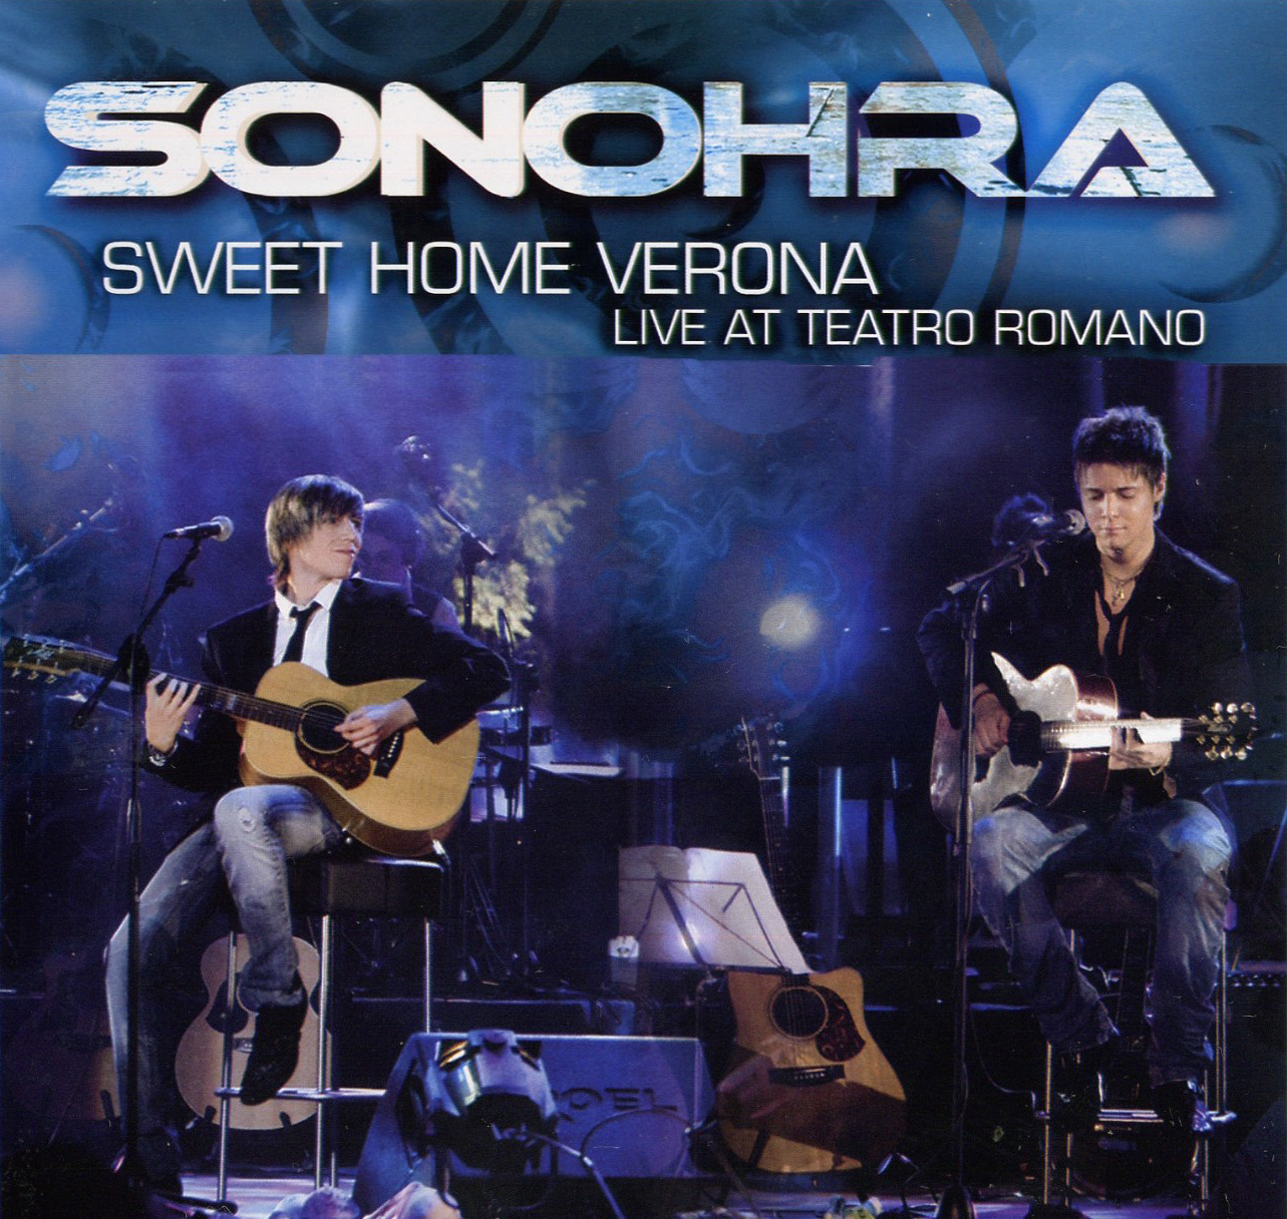 Sweet Home Verona (Live at Teatro Romano)